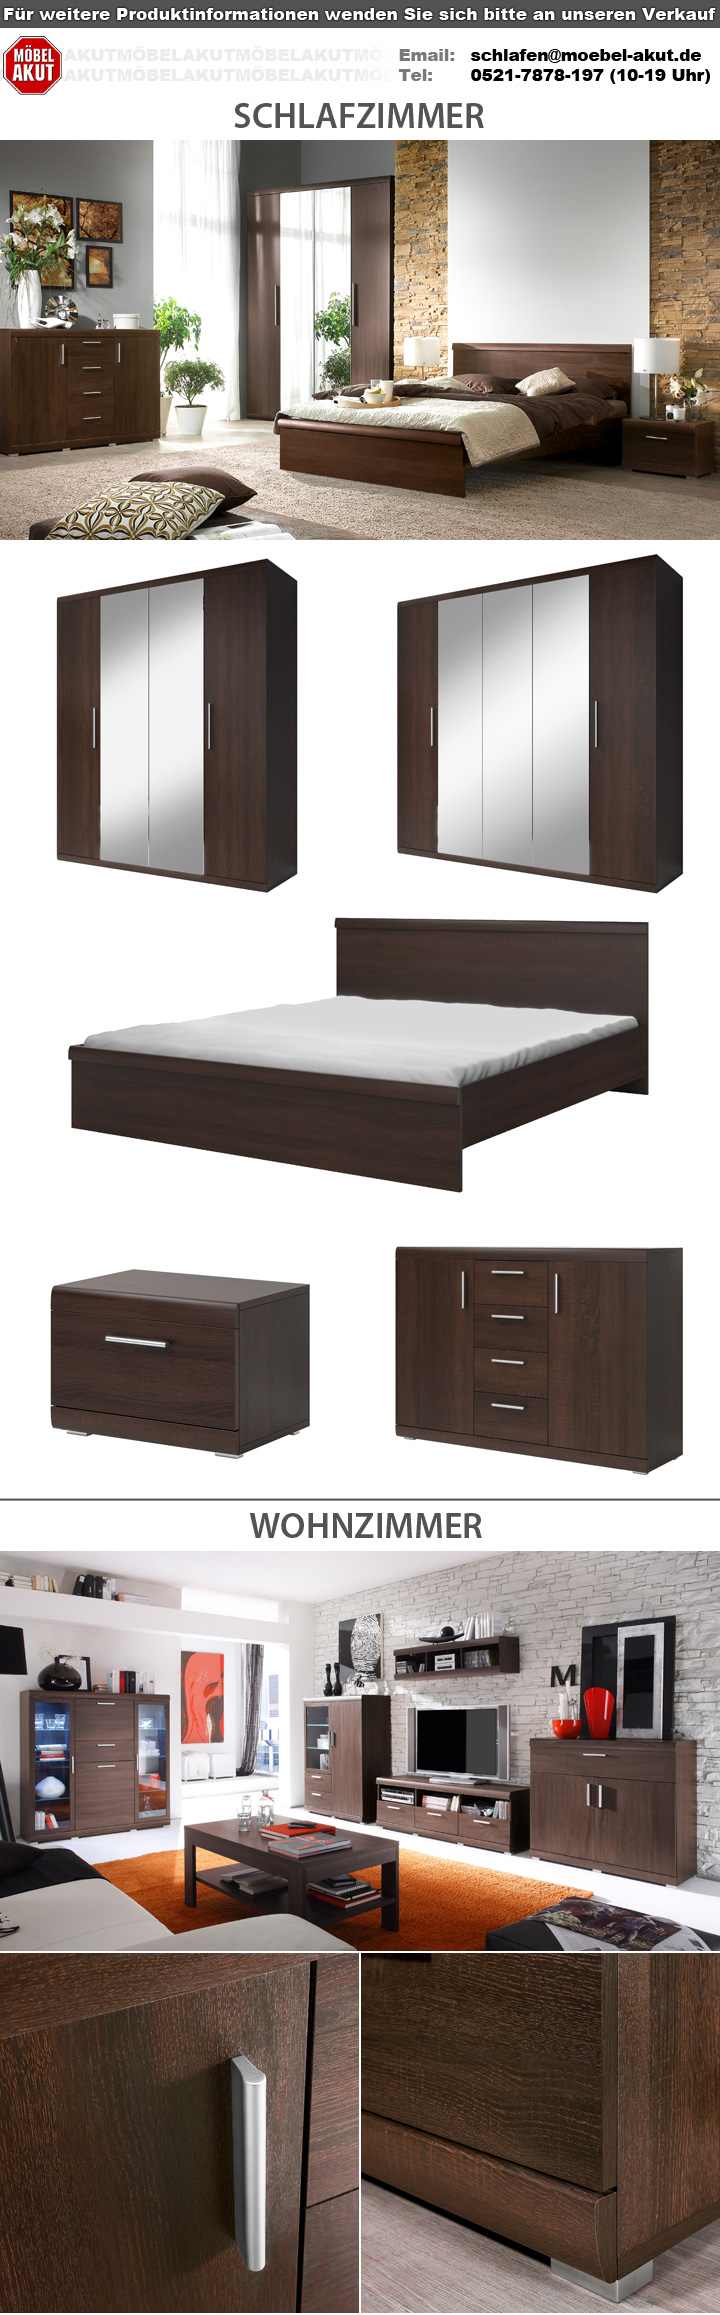 wandregal mestre wandboard regal in sonoma eiche dunkel. Black Bedroom Furniture Sets. Home Design Ideas